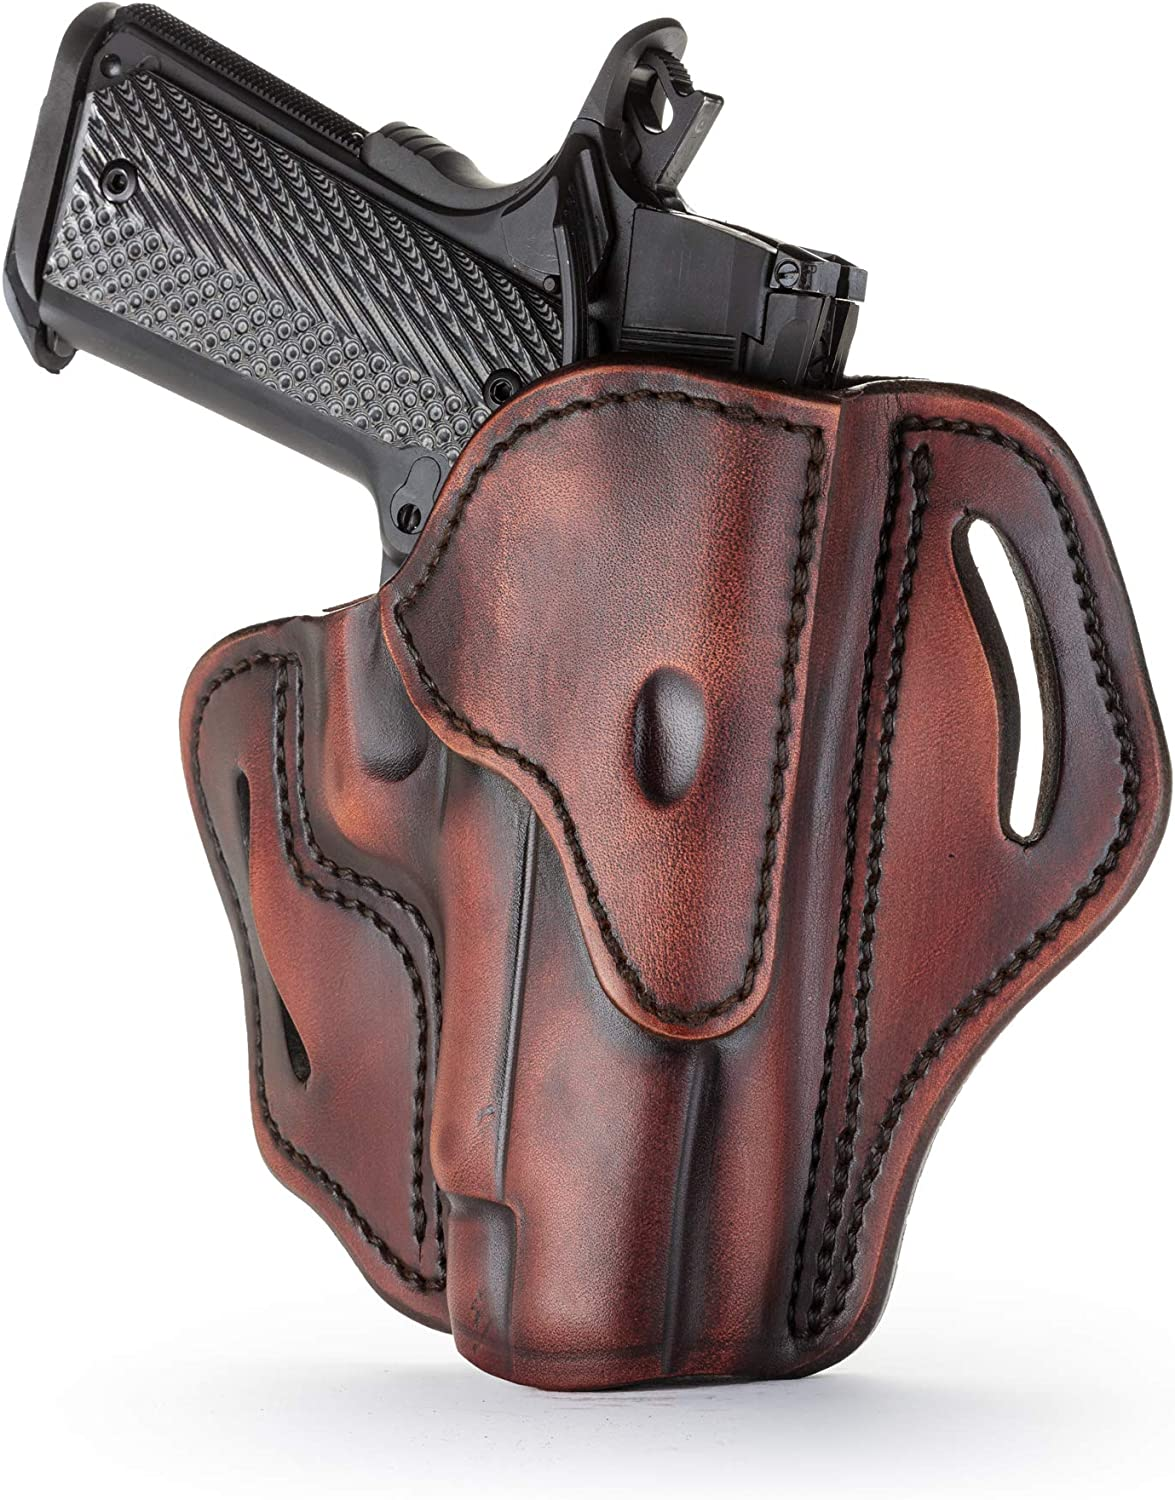 1791 GUNLEATHER Holster Cheap bargain for Luxury Sig Sauer P229 Right Han P226 P220